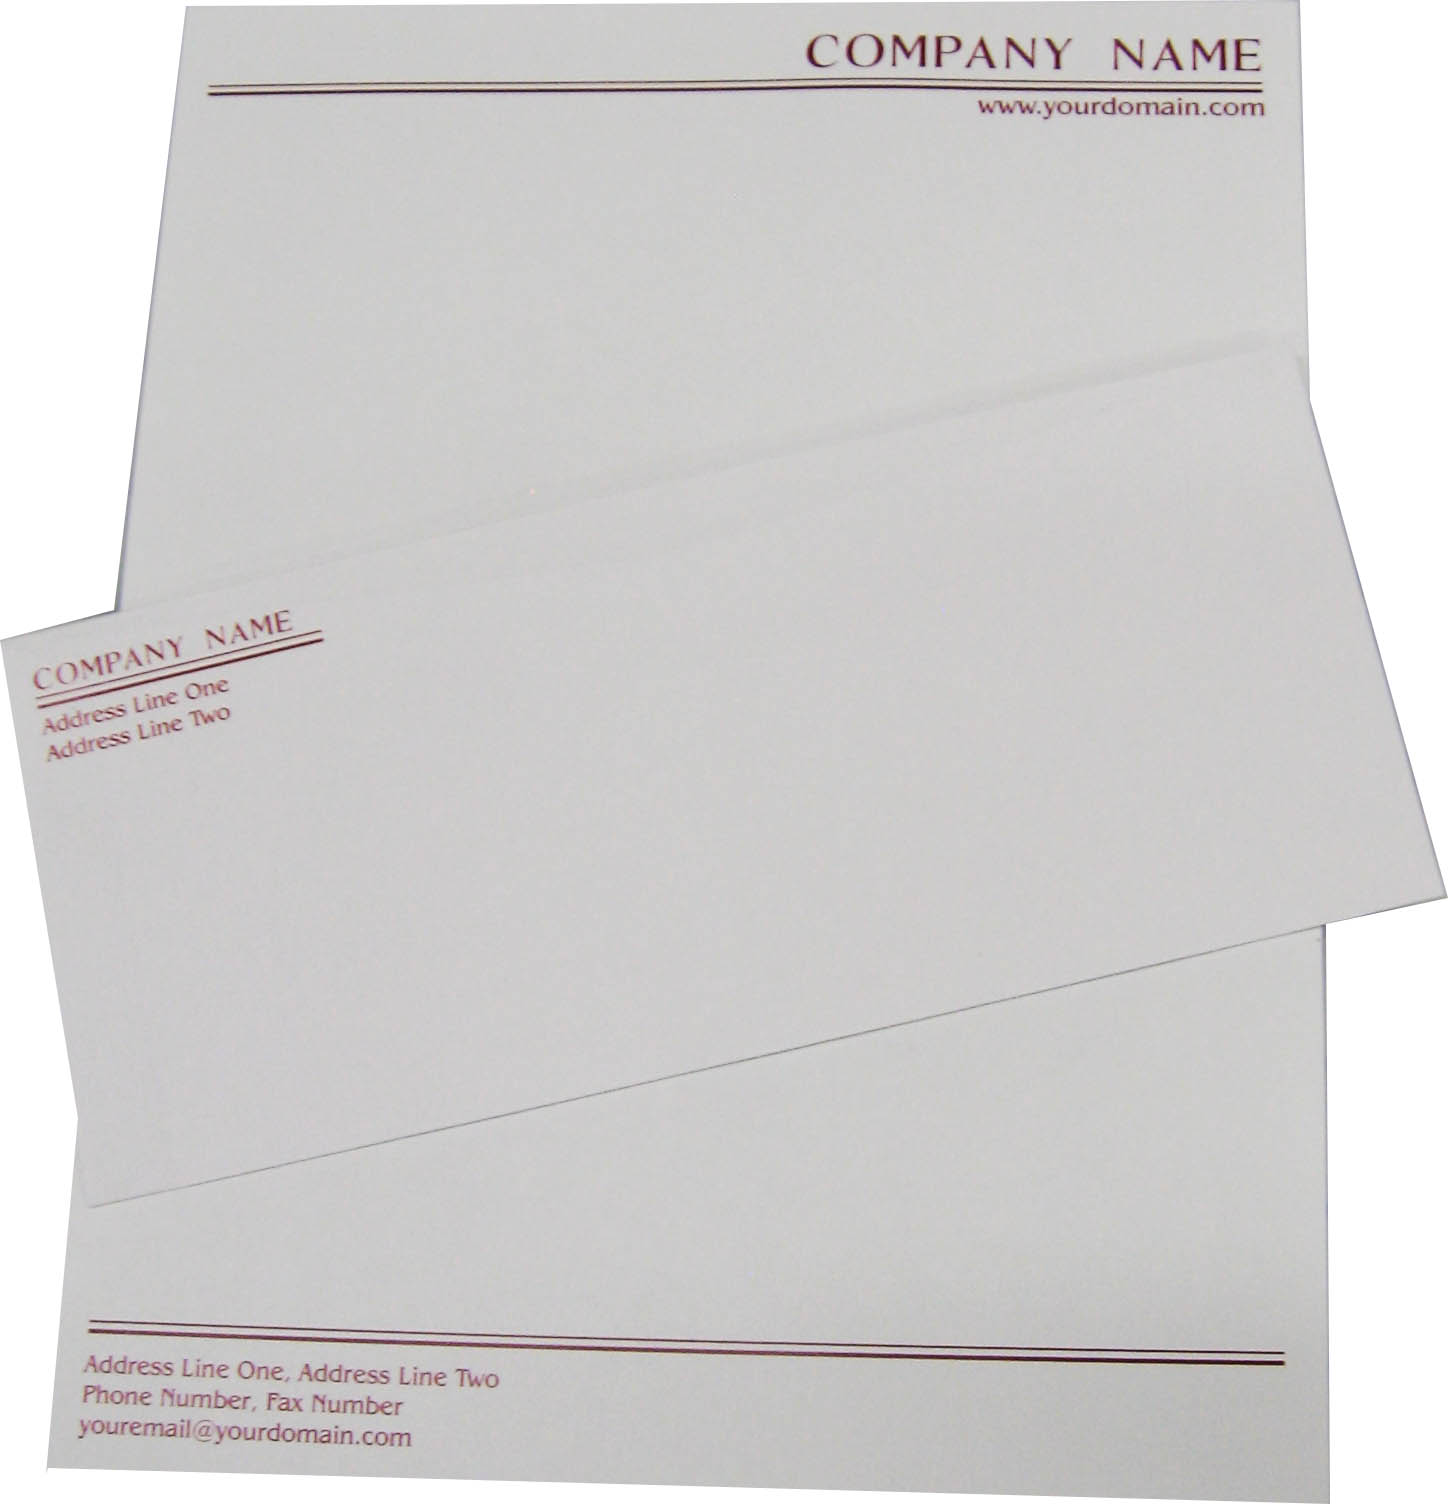 Letterhead/Envelope Layout